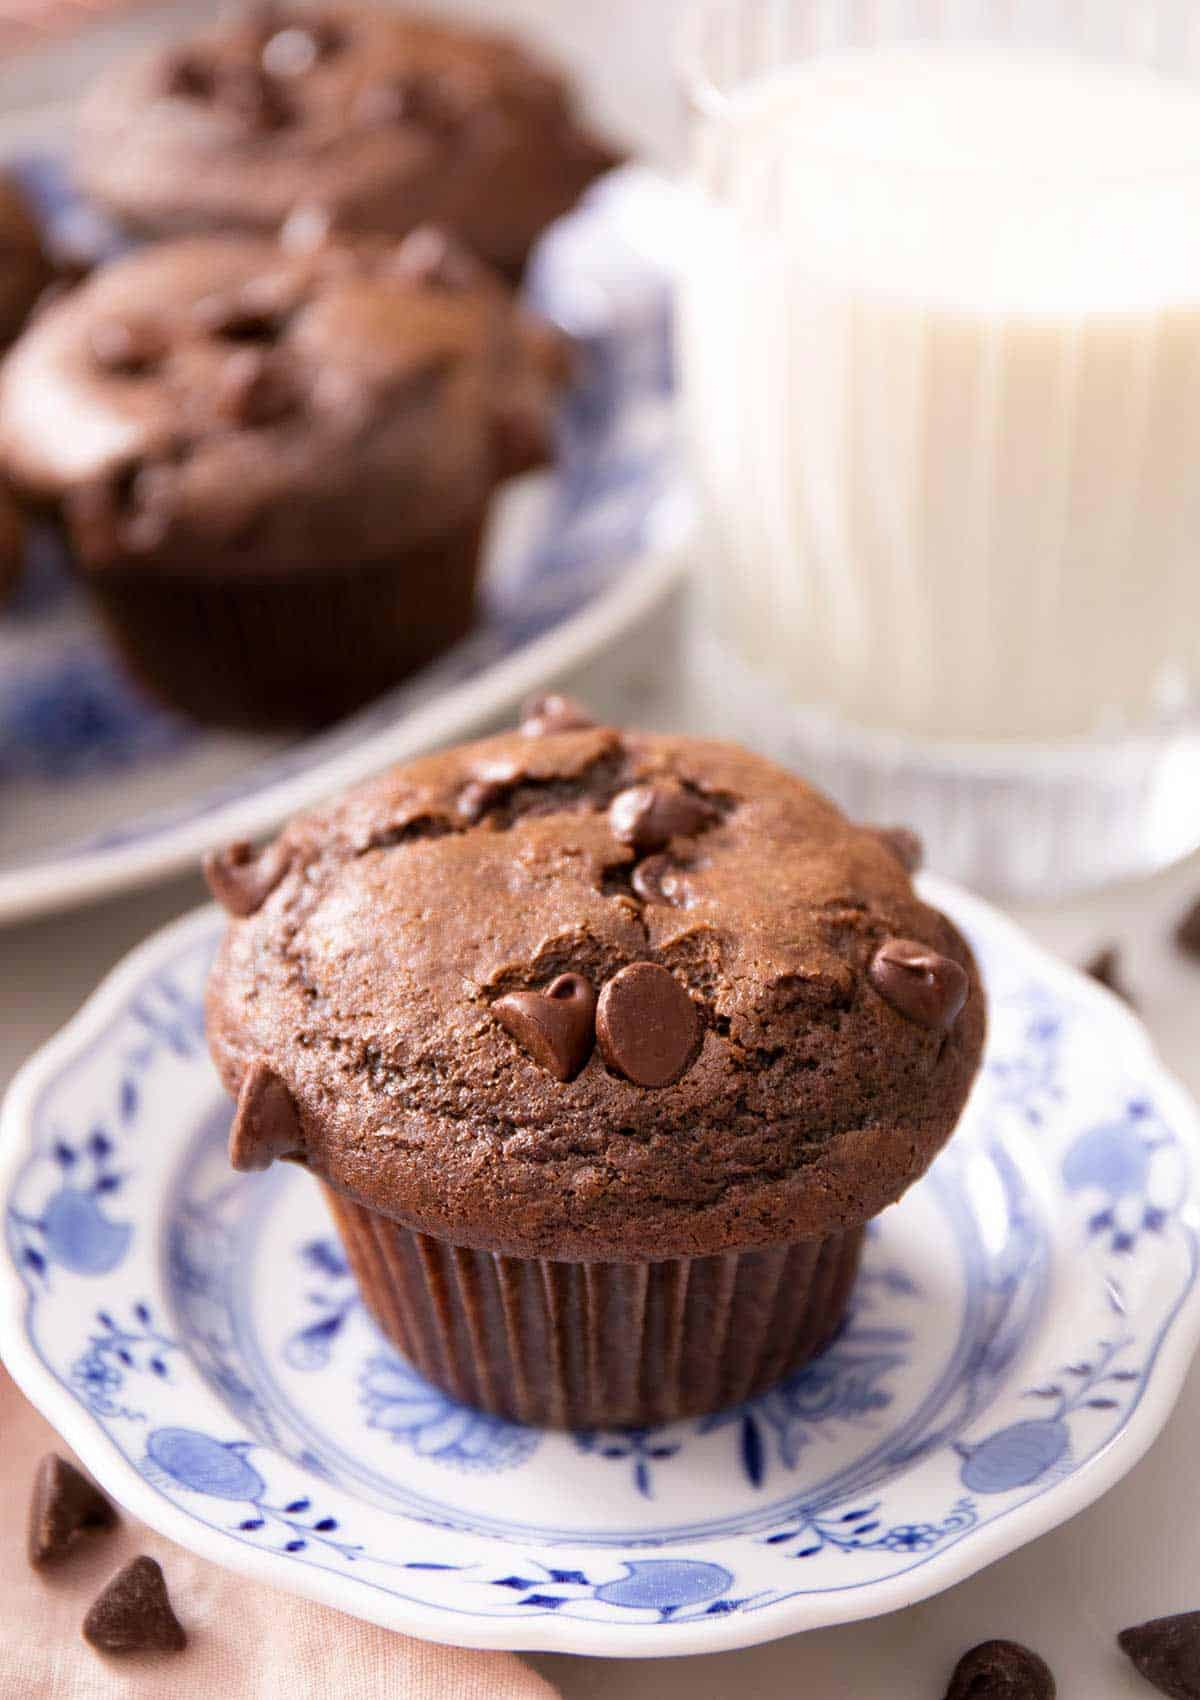 A close up of a chocolate muffin on a blue plate